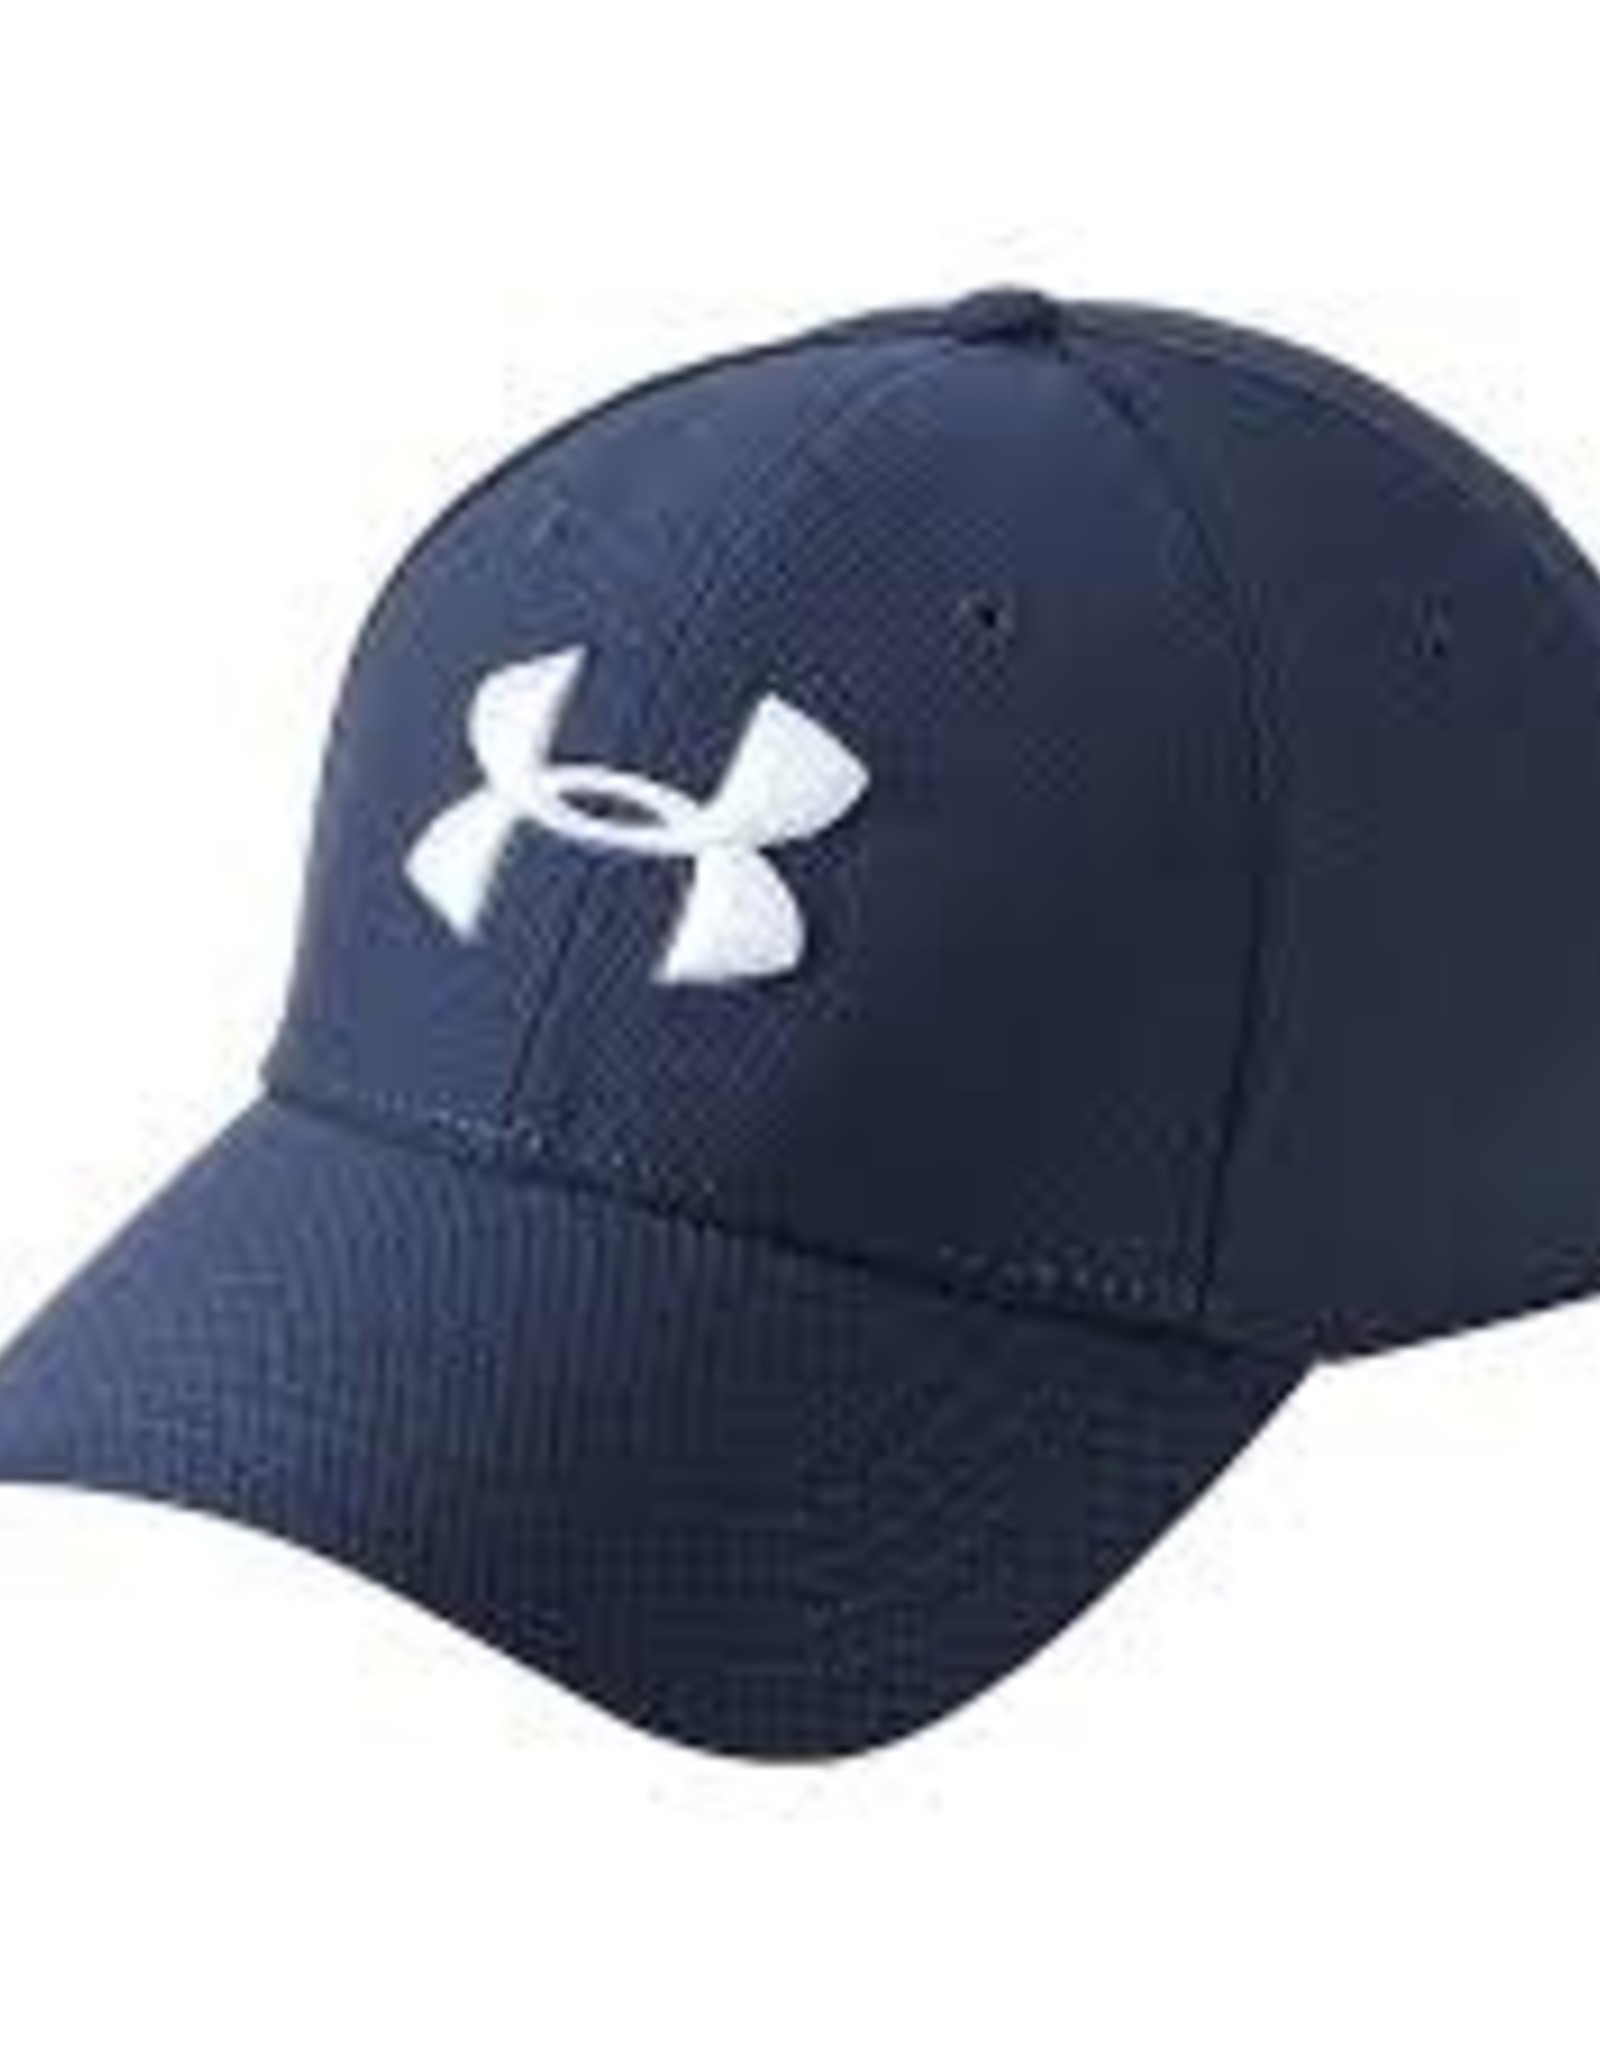 Under Armour Mens UA Men's Blitzing 3.0 Cap Midnight Navy / Graphite / White M/L